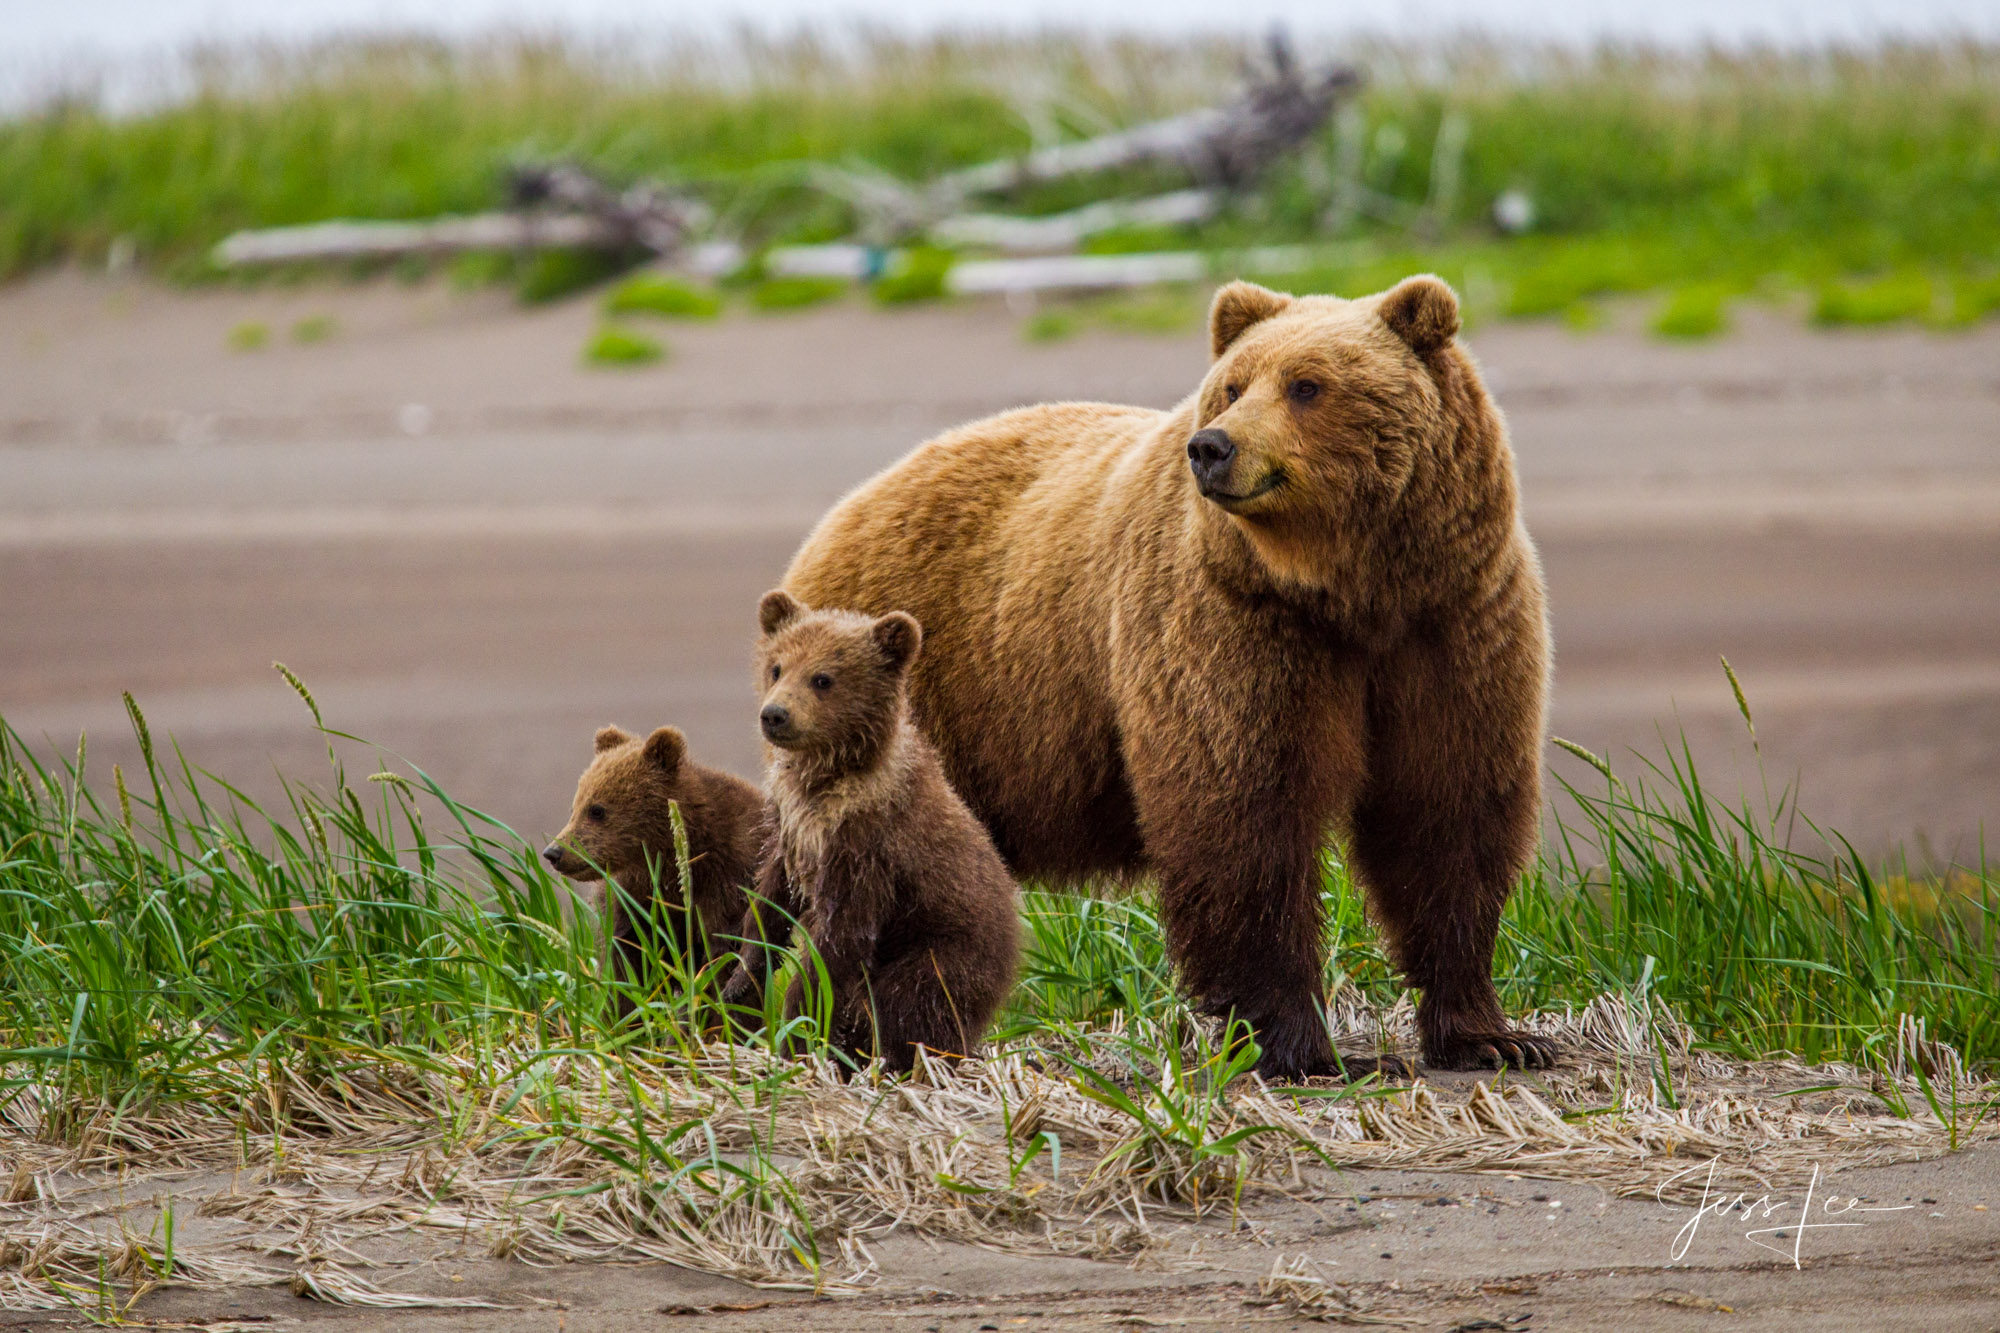 Grizzly Cubs and mom being very alert while looking at another bear. Limited edition of 800 prints. These Grizzly bear fine art...